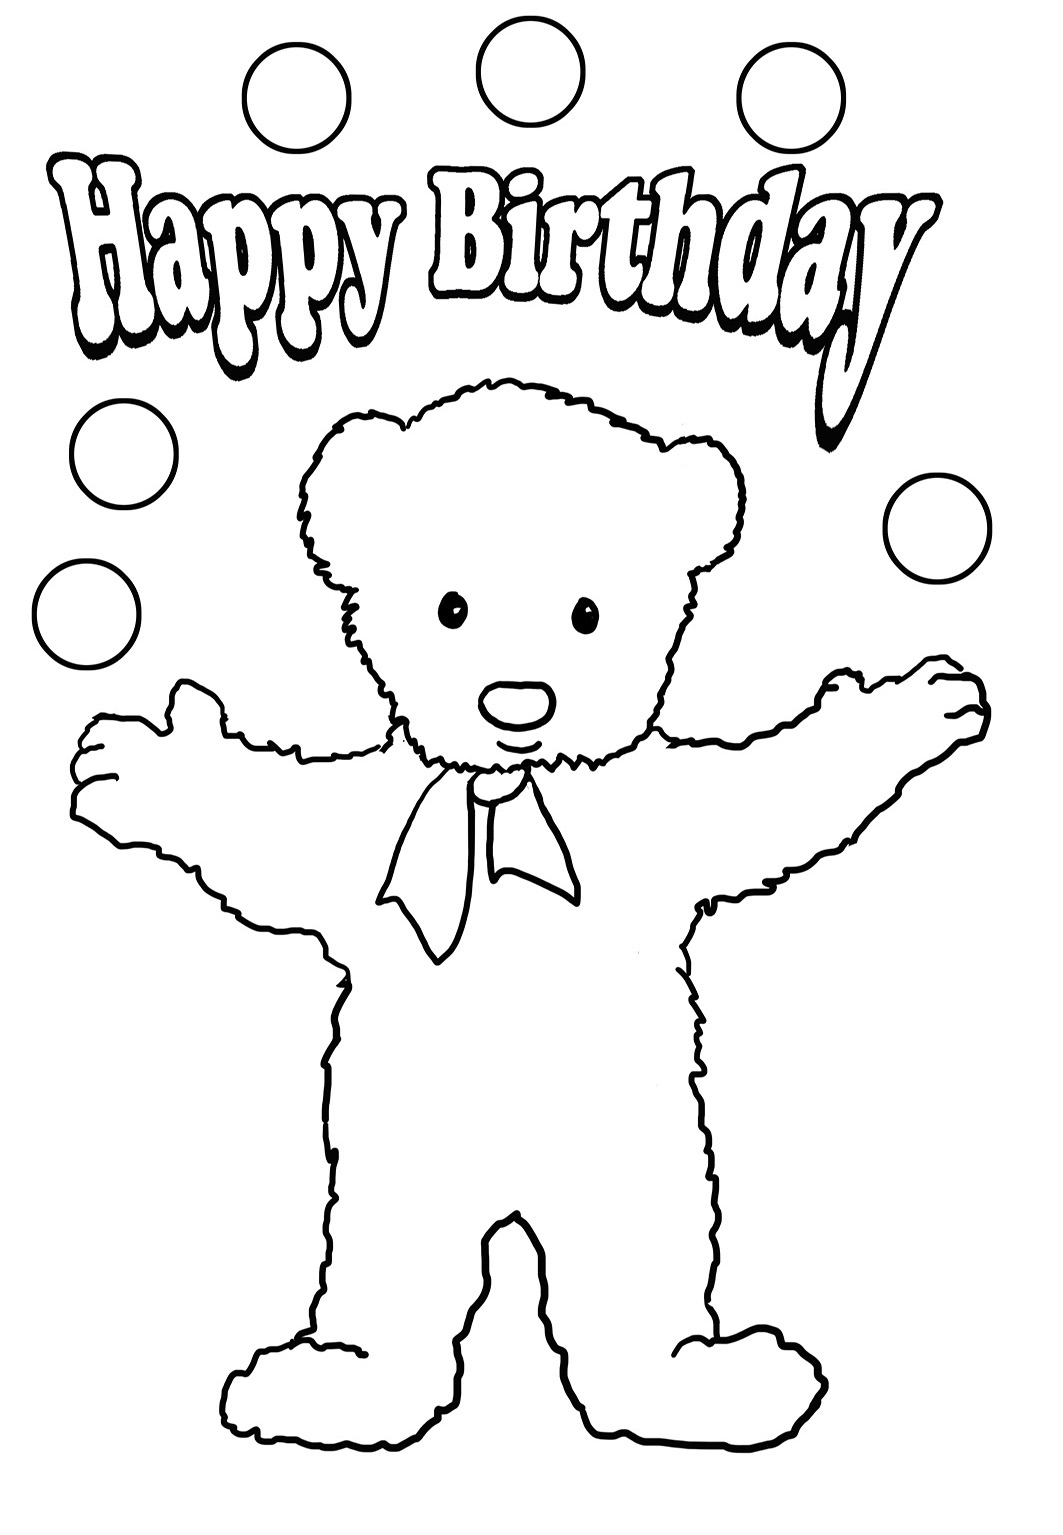 happy birthday coloring sheets to print ; birthday-coloring-teddy-bear-balls